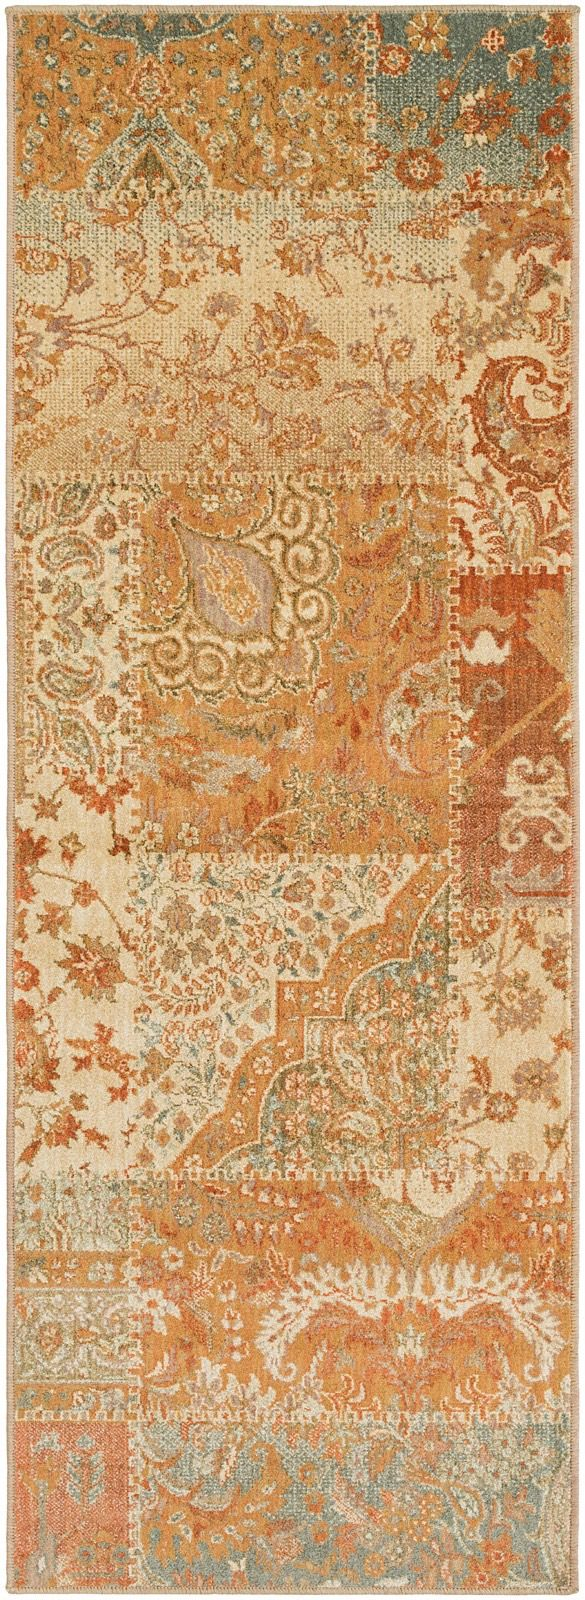 surya hathaway country & floral area rug collection